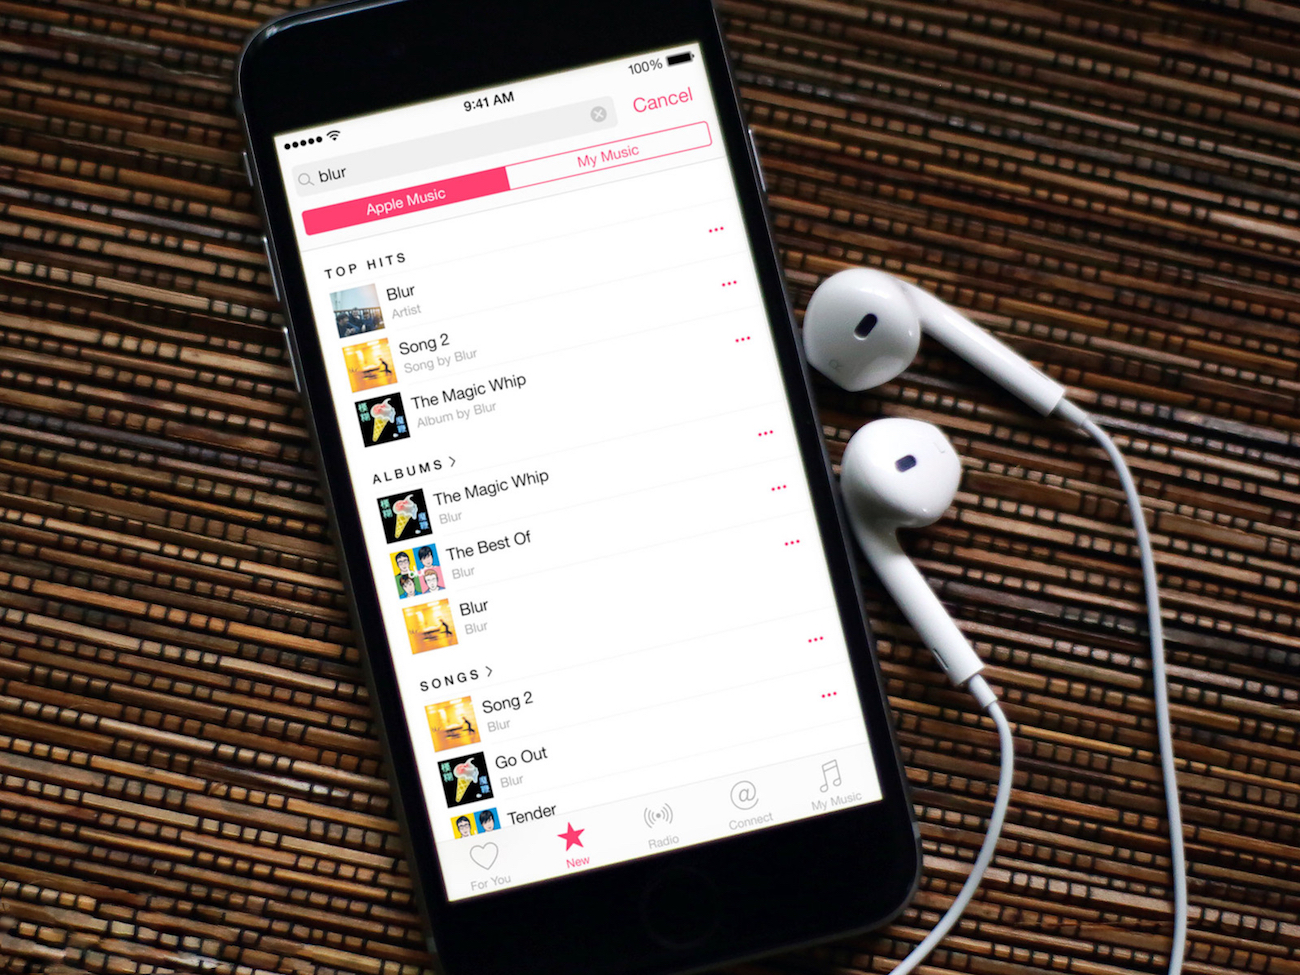 Apple Music was incredibly popular in Russia